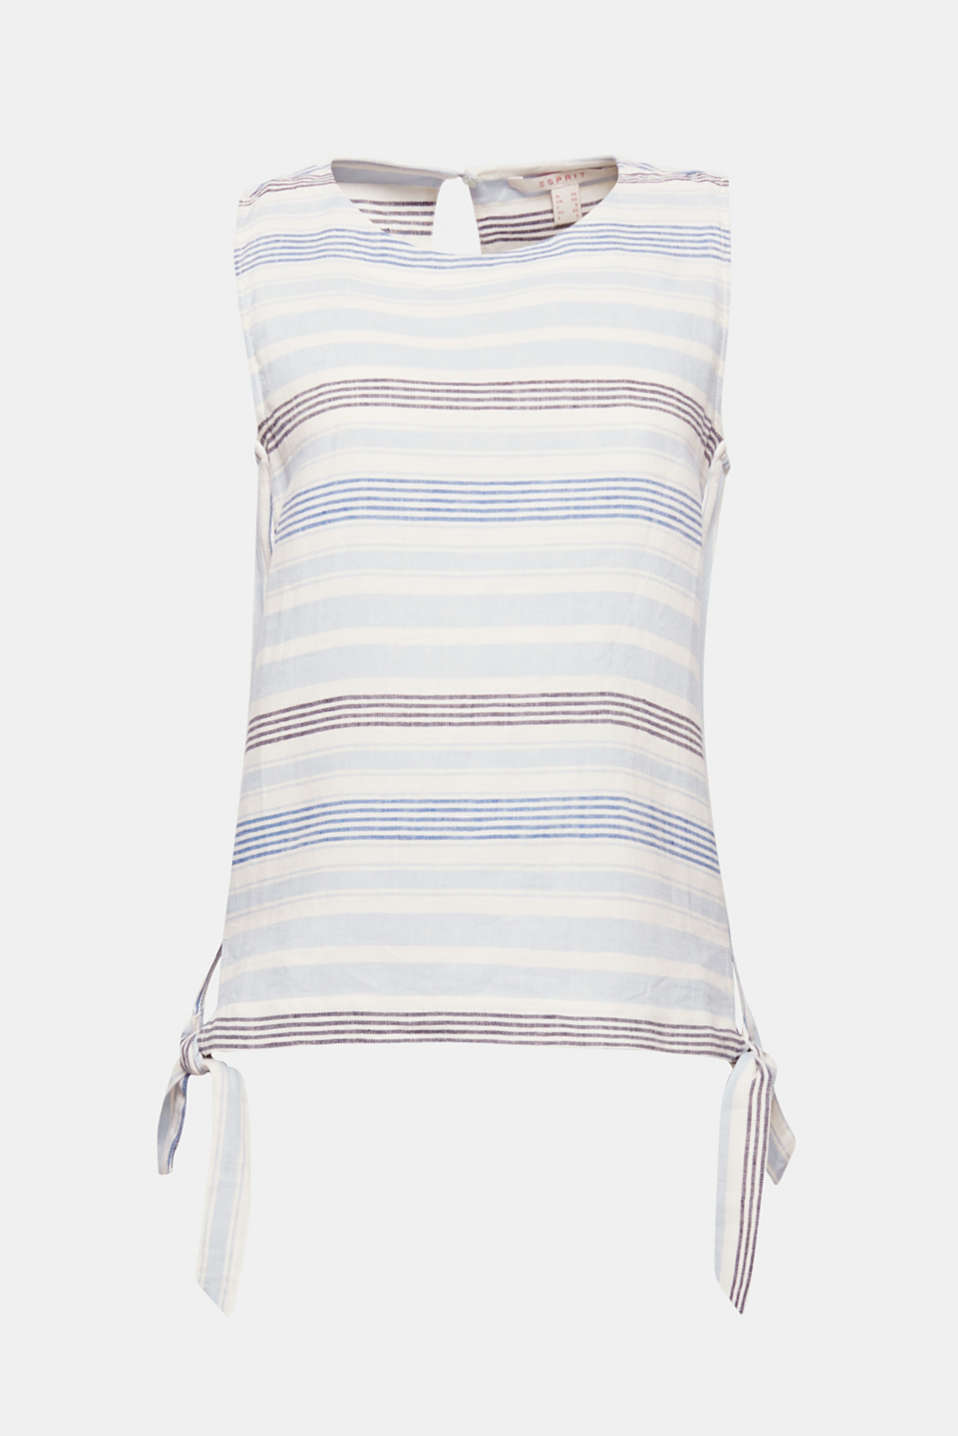 This sleeveless blouse in pleasantly cooling blended linen is the perfect piece for staying comfortable on hotter days. Trendy knotted details and a fresh striped pattern round off the style.